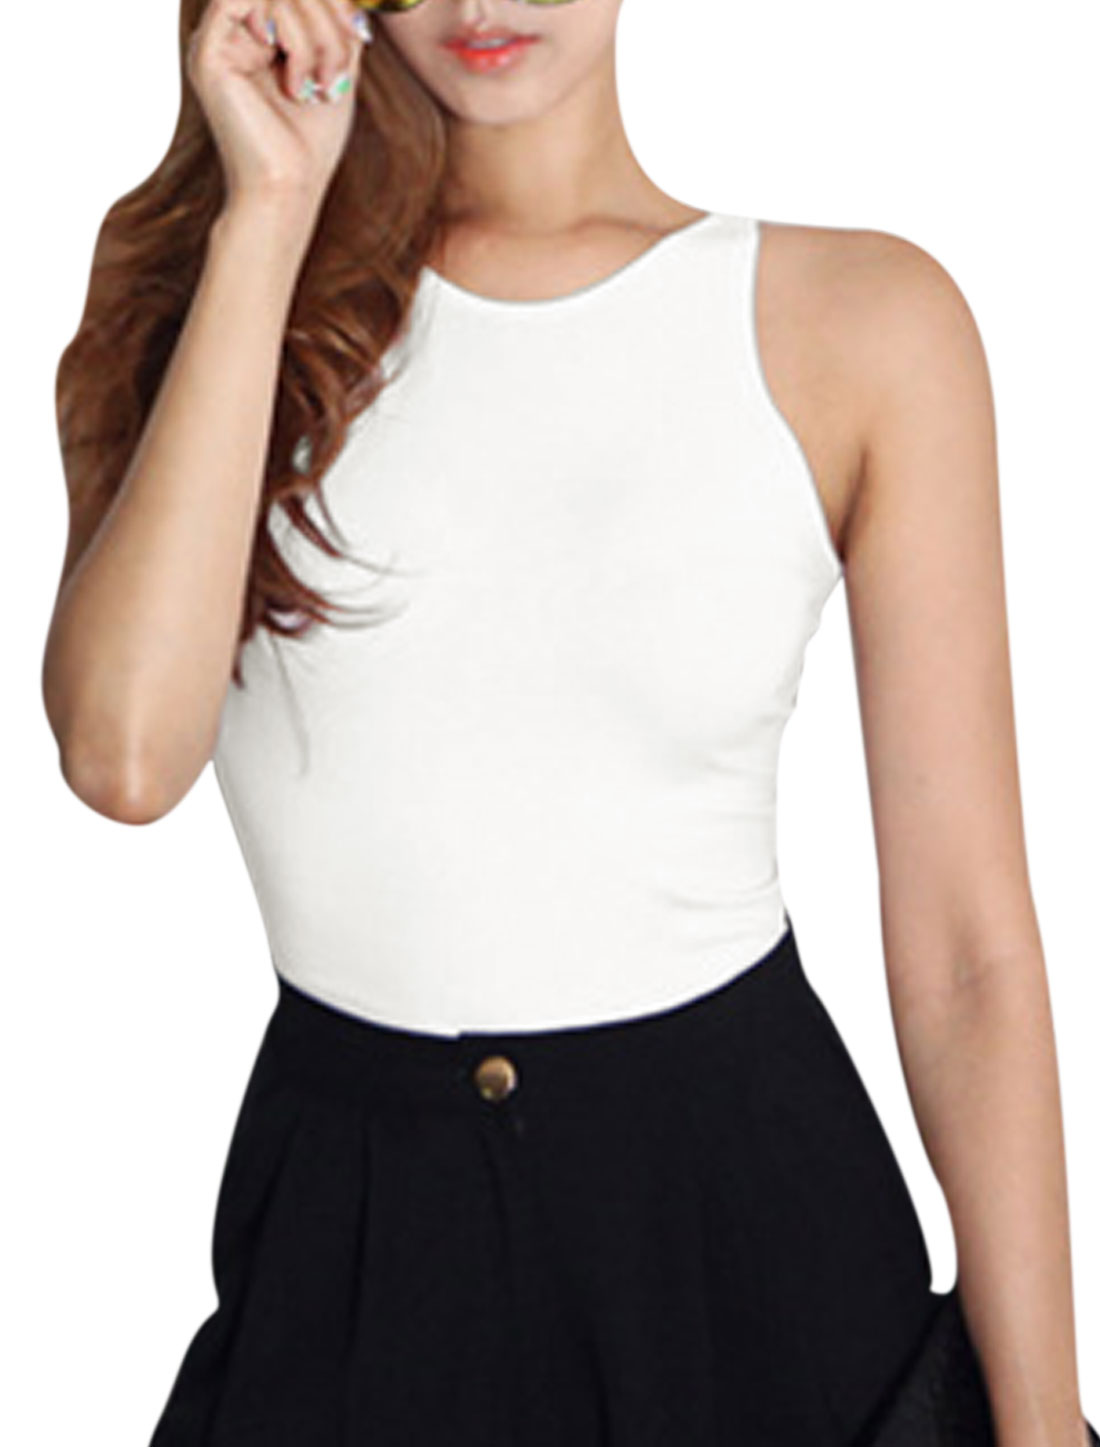 Woman Round Neck Sleeveless Cut Out Crisscross Back Crop Top White S